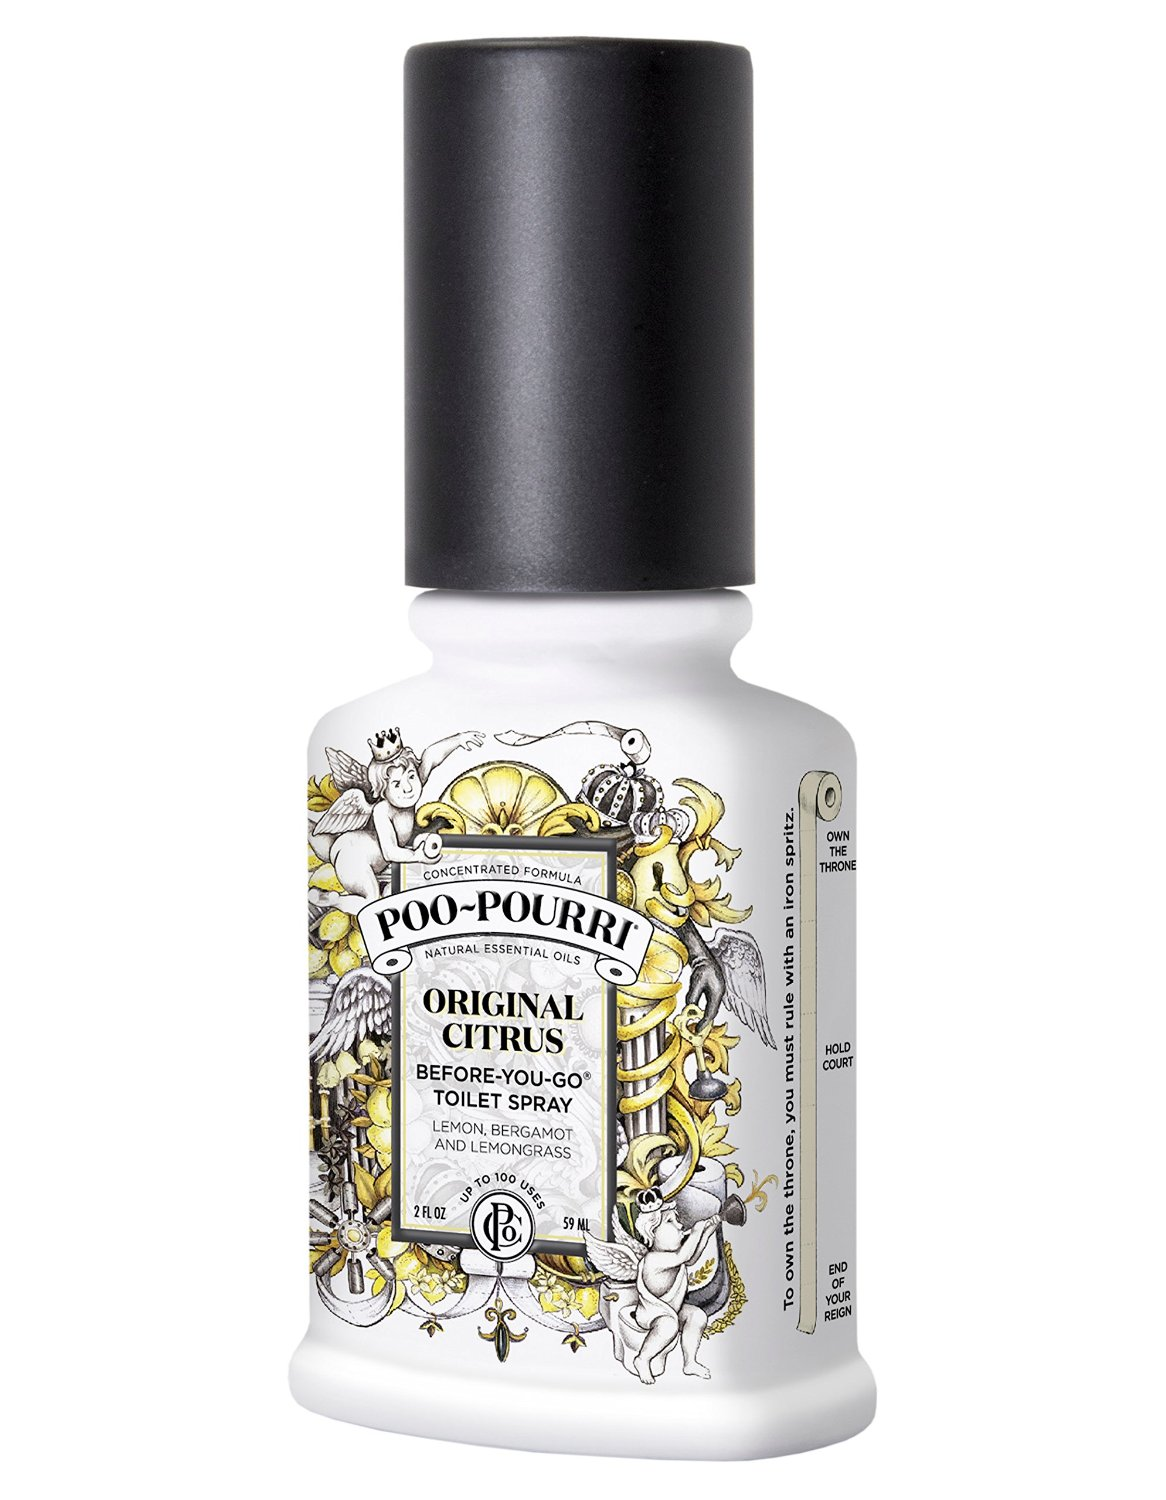 Tales from the Dad Side Poo-Pourri